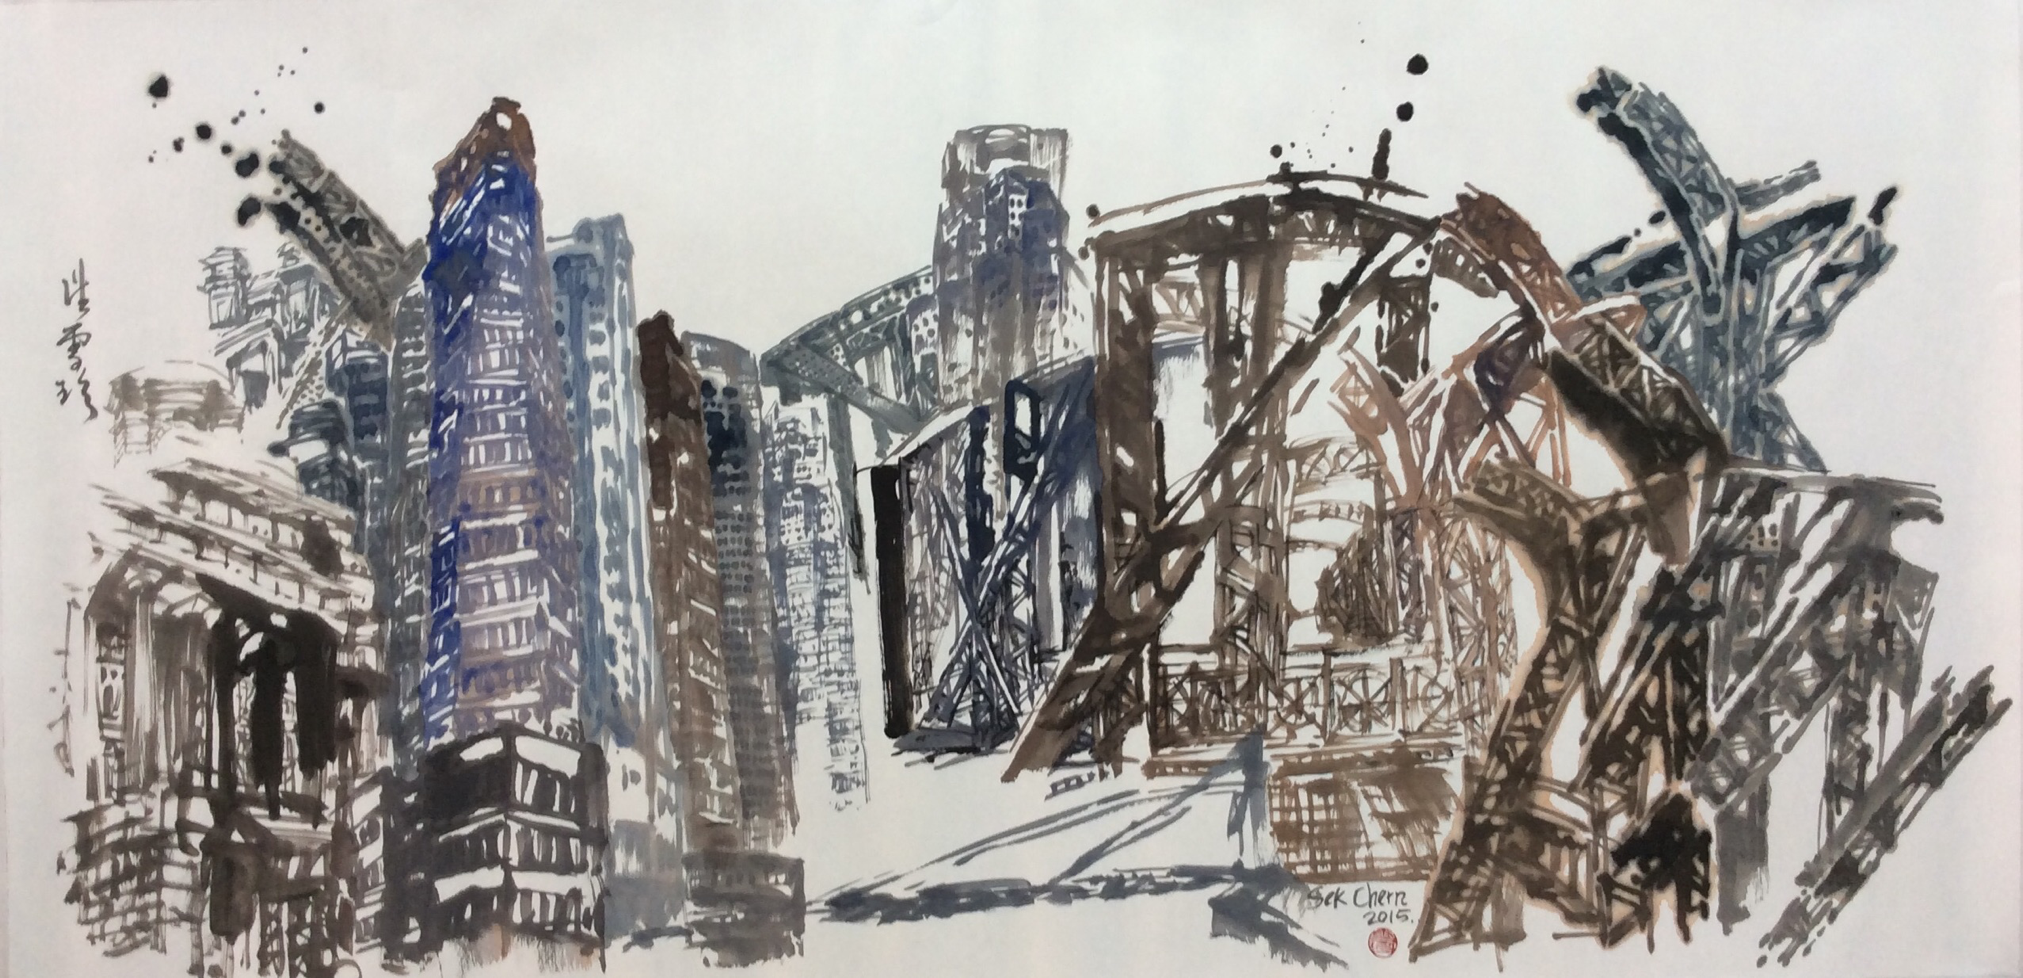 Hong Sek Chern, Along Esplanade Drive, ink and colour on rice paper, 68 x 138 cm, 2015